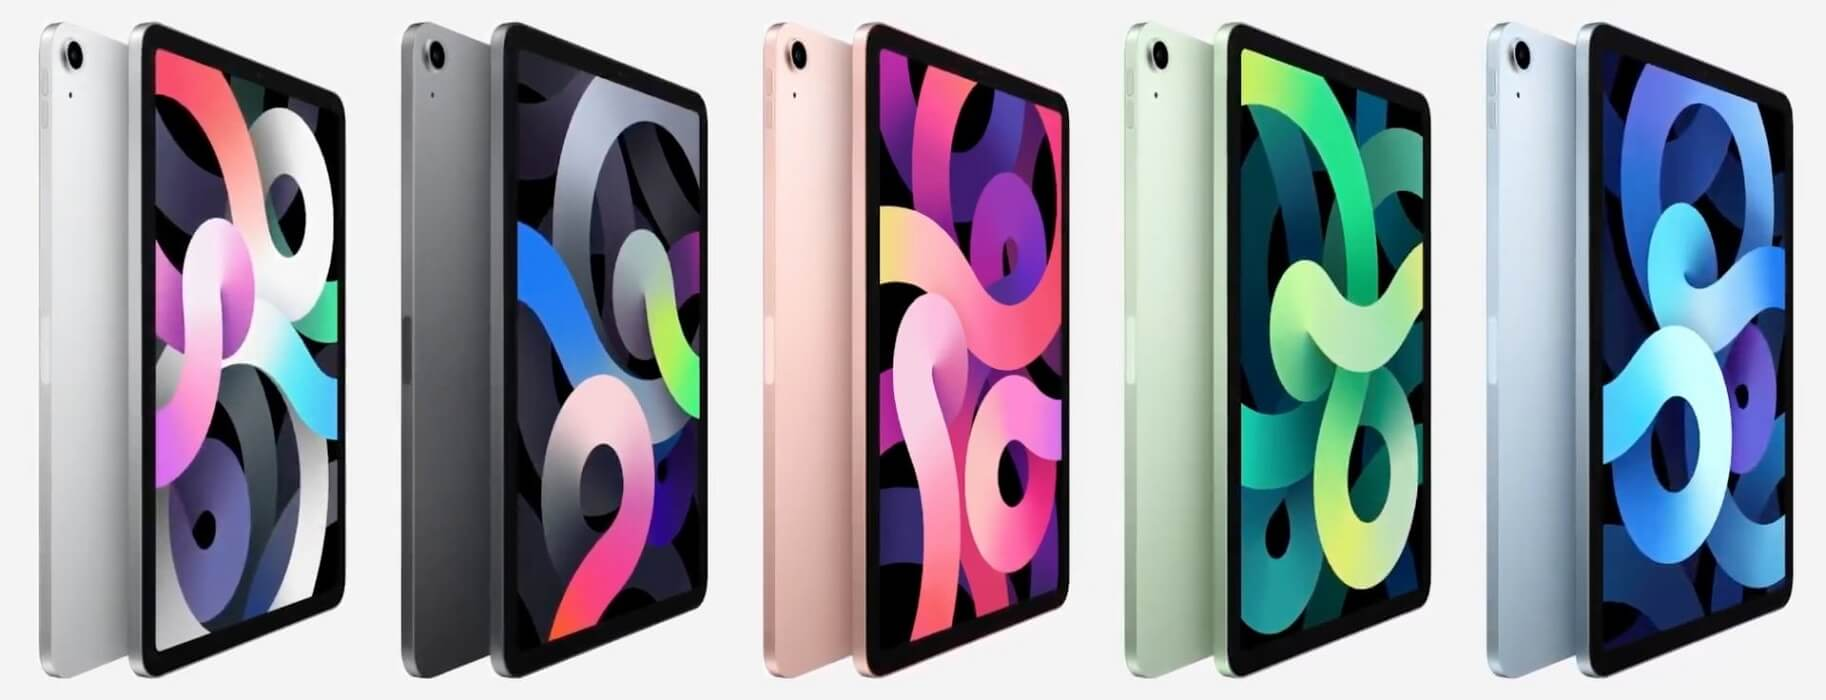 Apple iPad Air 4th Gen colors